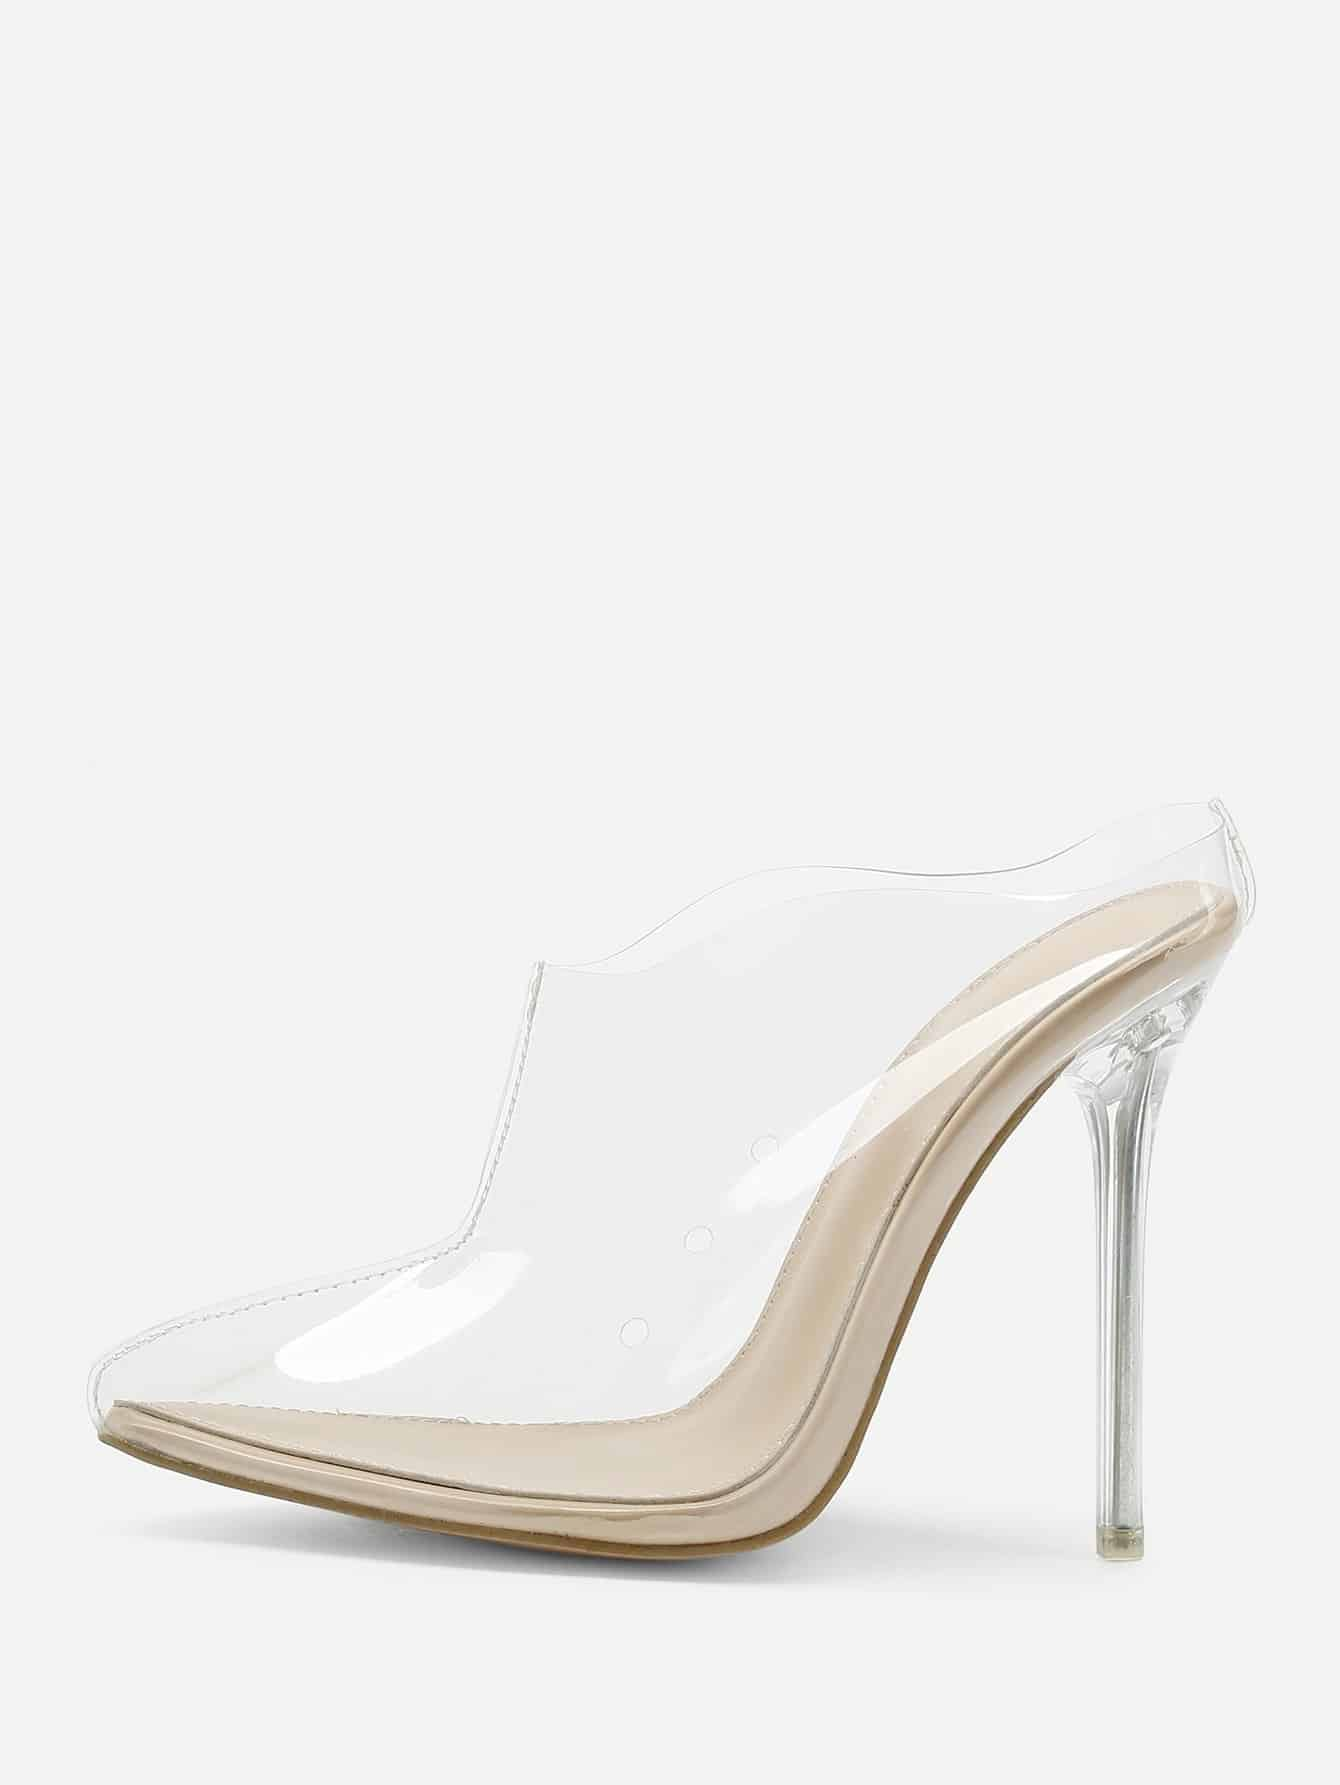 Transparent PVC Stiletto Heels